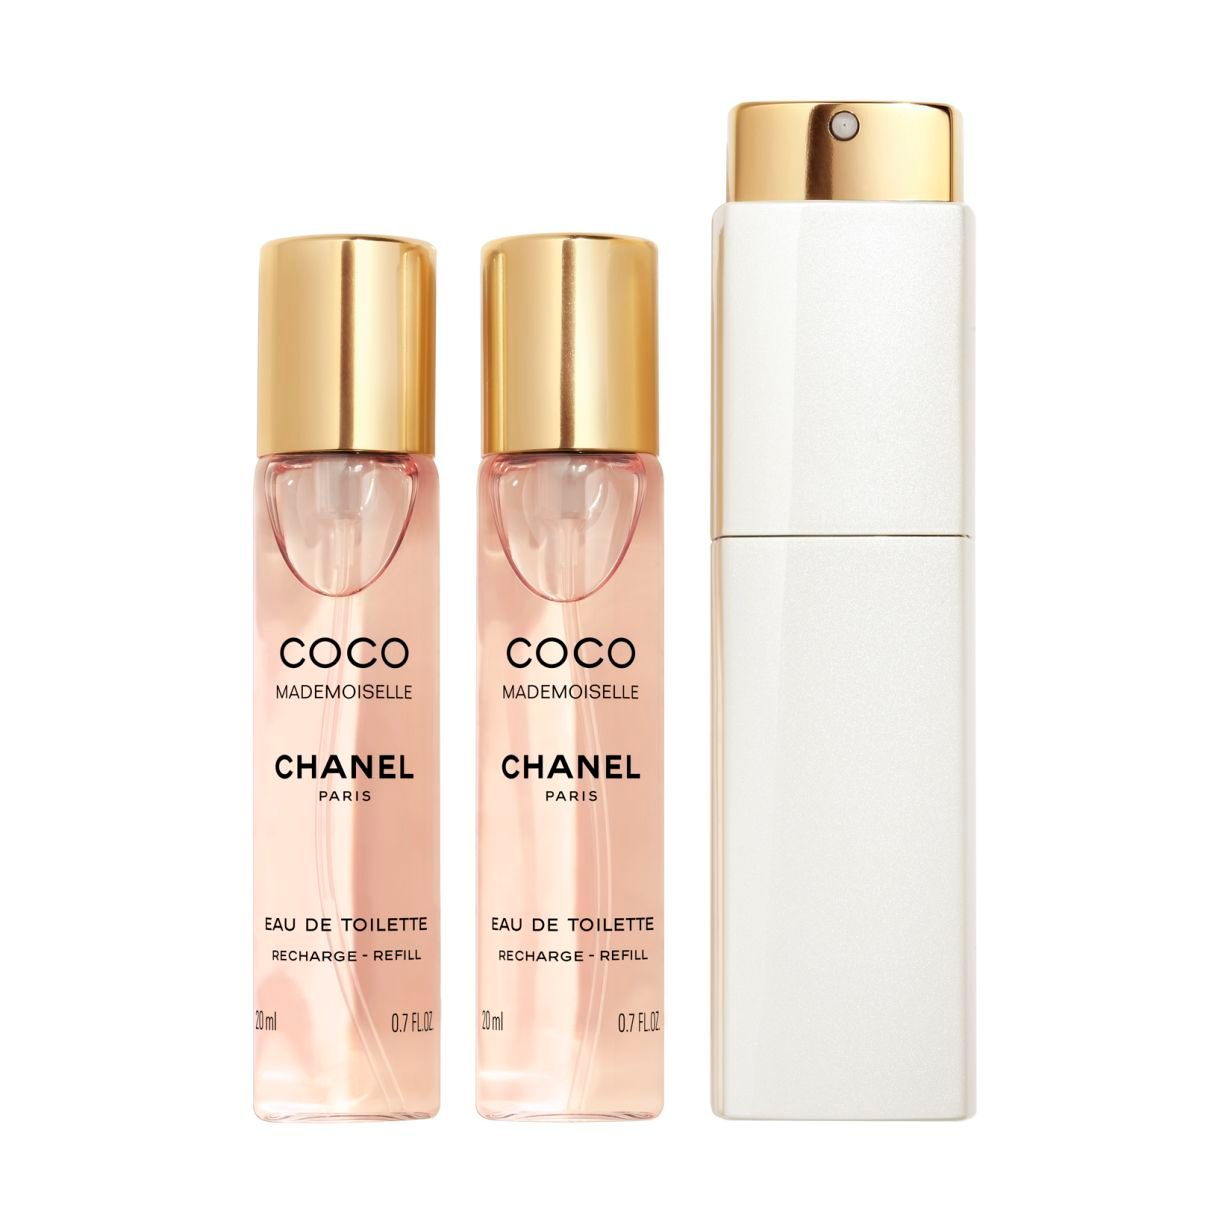 COCO MADEMOISELLE TWIST AND SPRAY Eau de Toilette rechargeable بخاخ برأس دوّار لماء التواليت 3x20ml